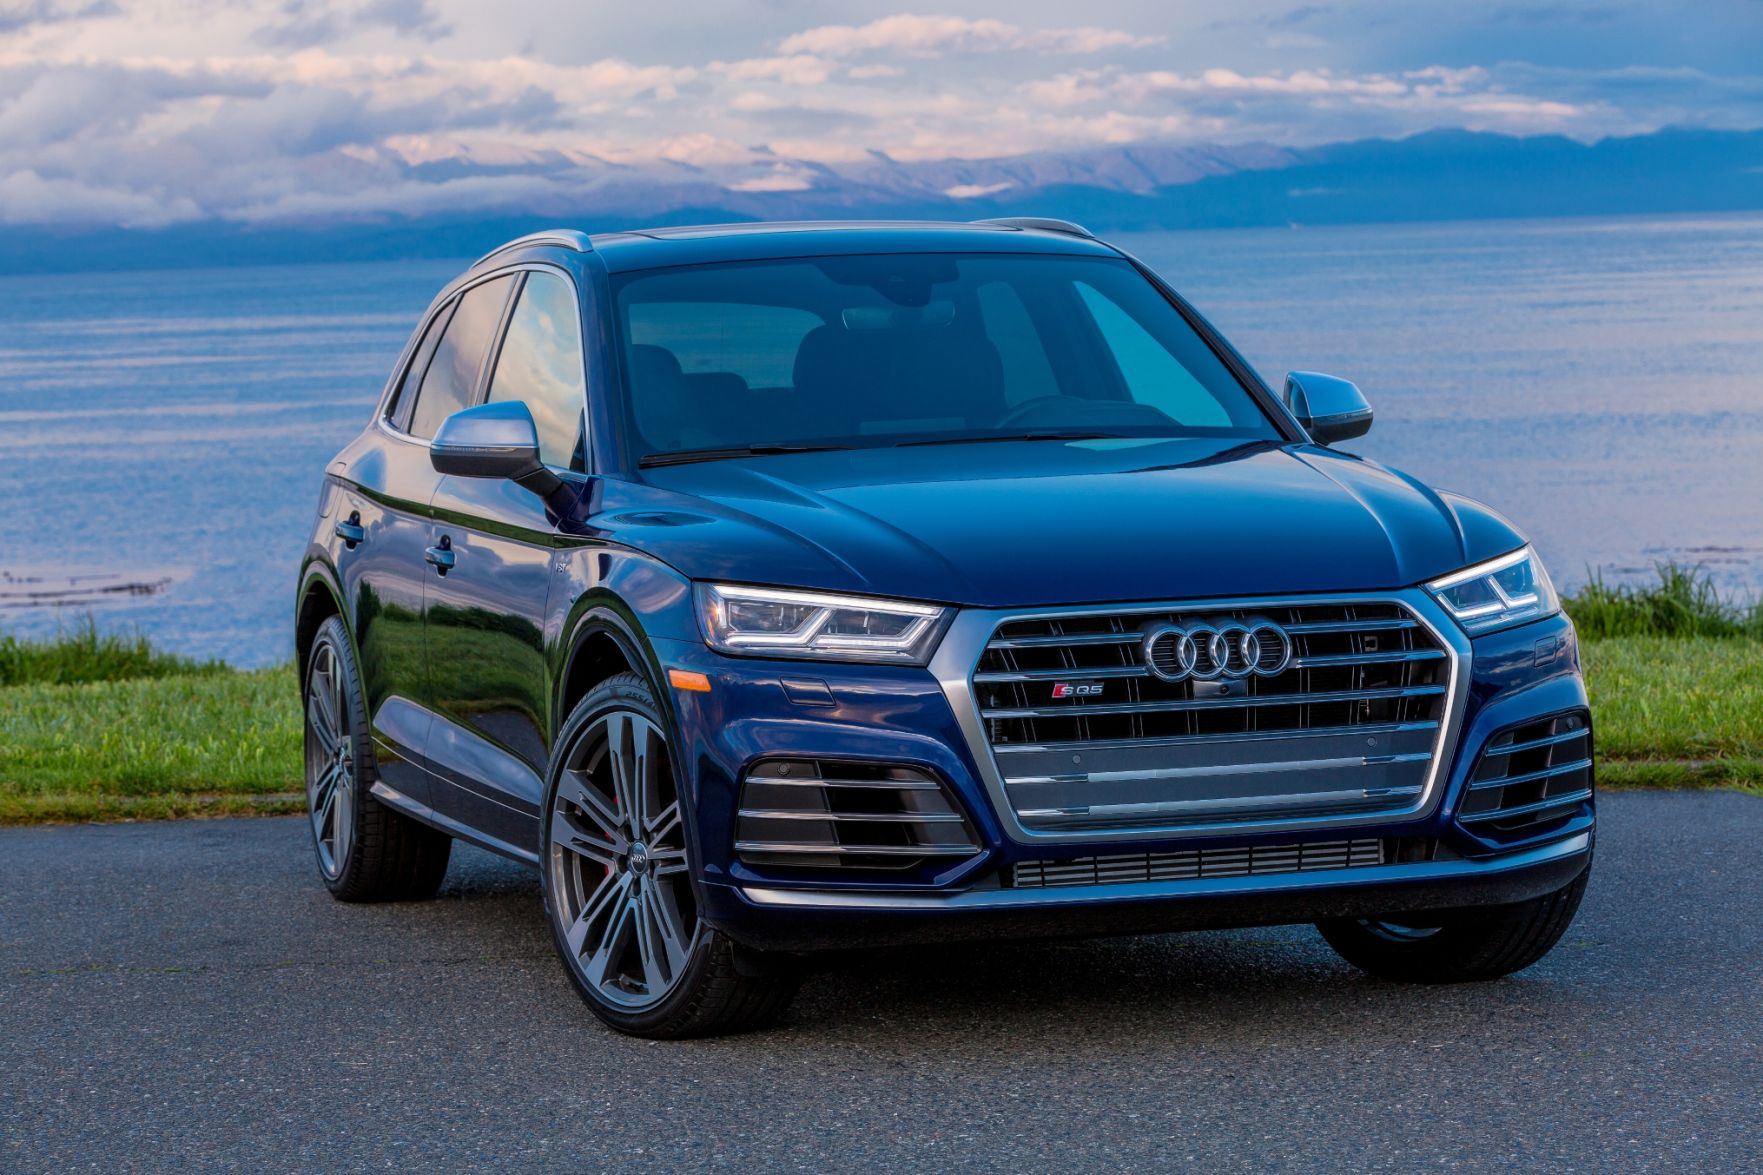 Garage Audi Tours 2018 Audi Sq5 Hot Rod Suv Is No Longer An Oxymoron Automotive